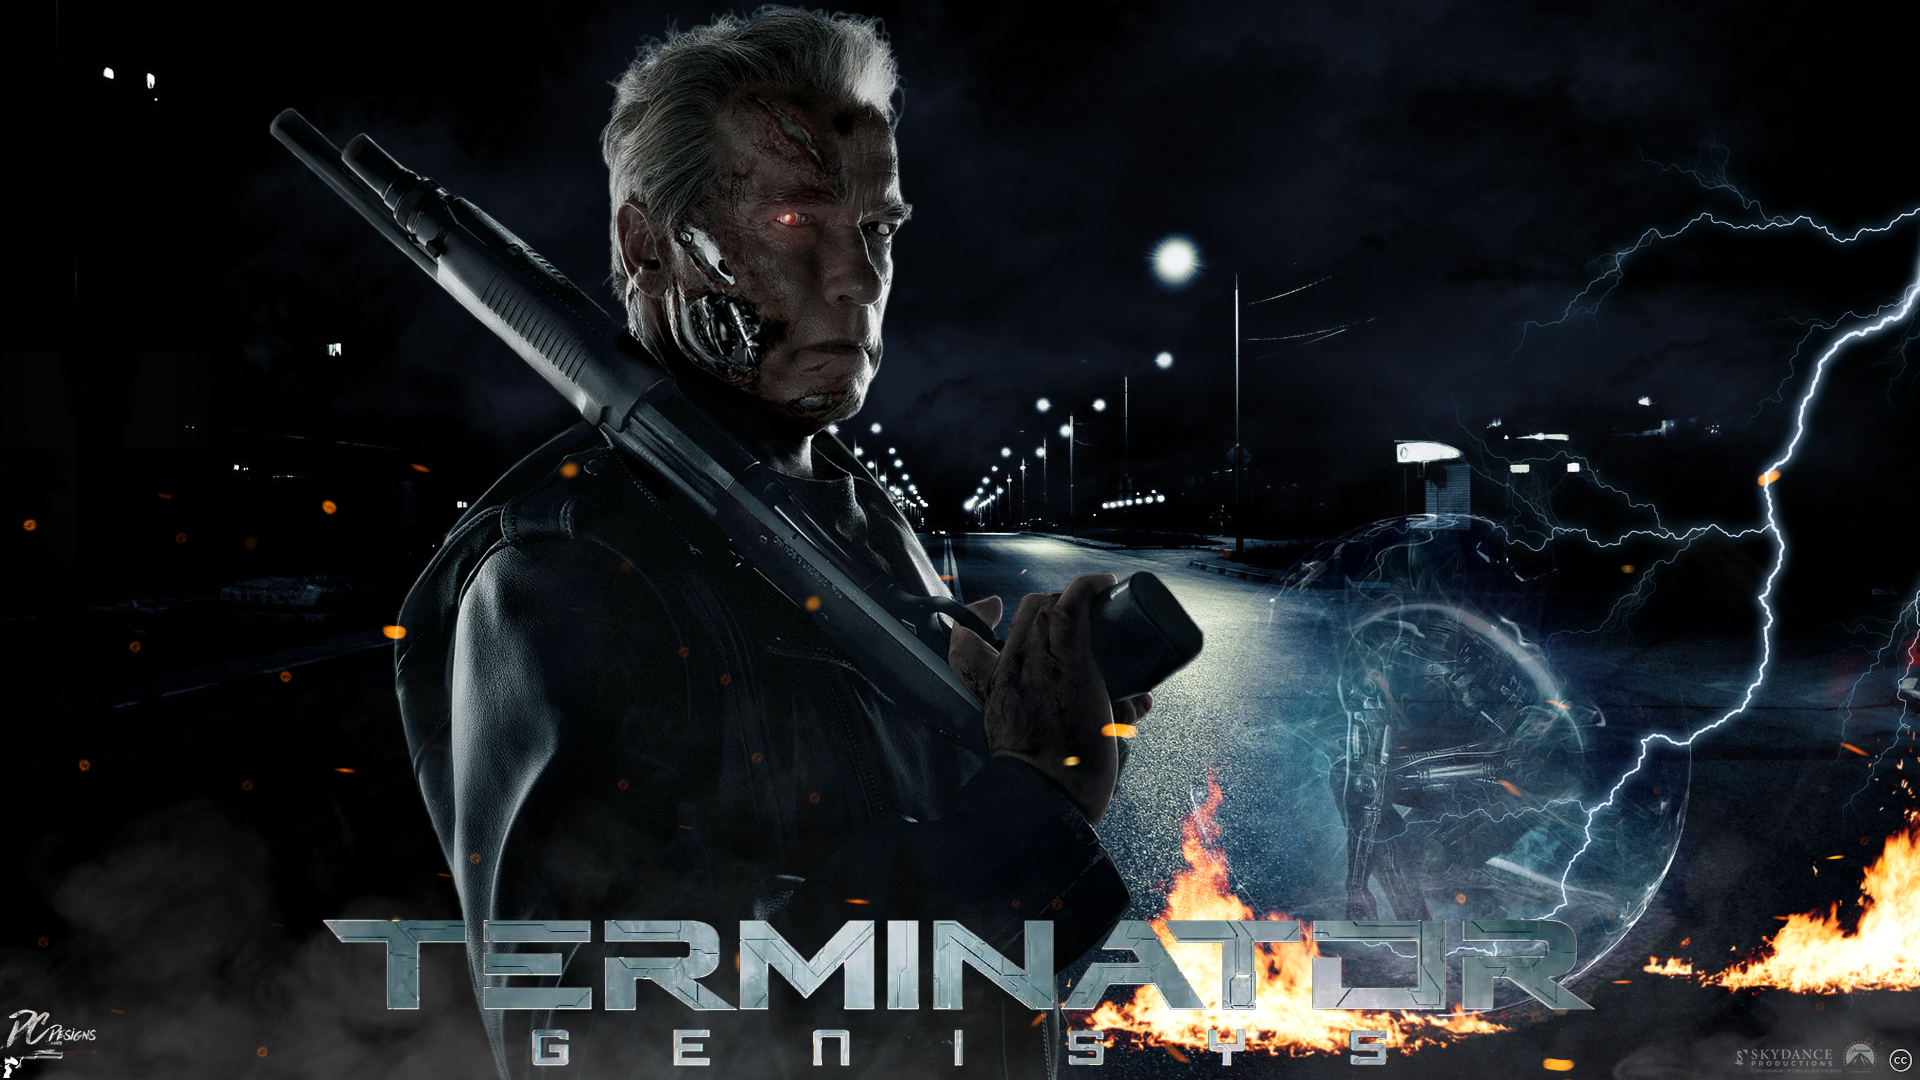 55 Terminator Genisys HD Wallpapers Background Images 1920x1080